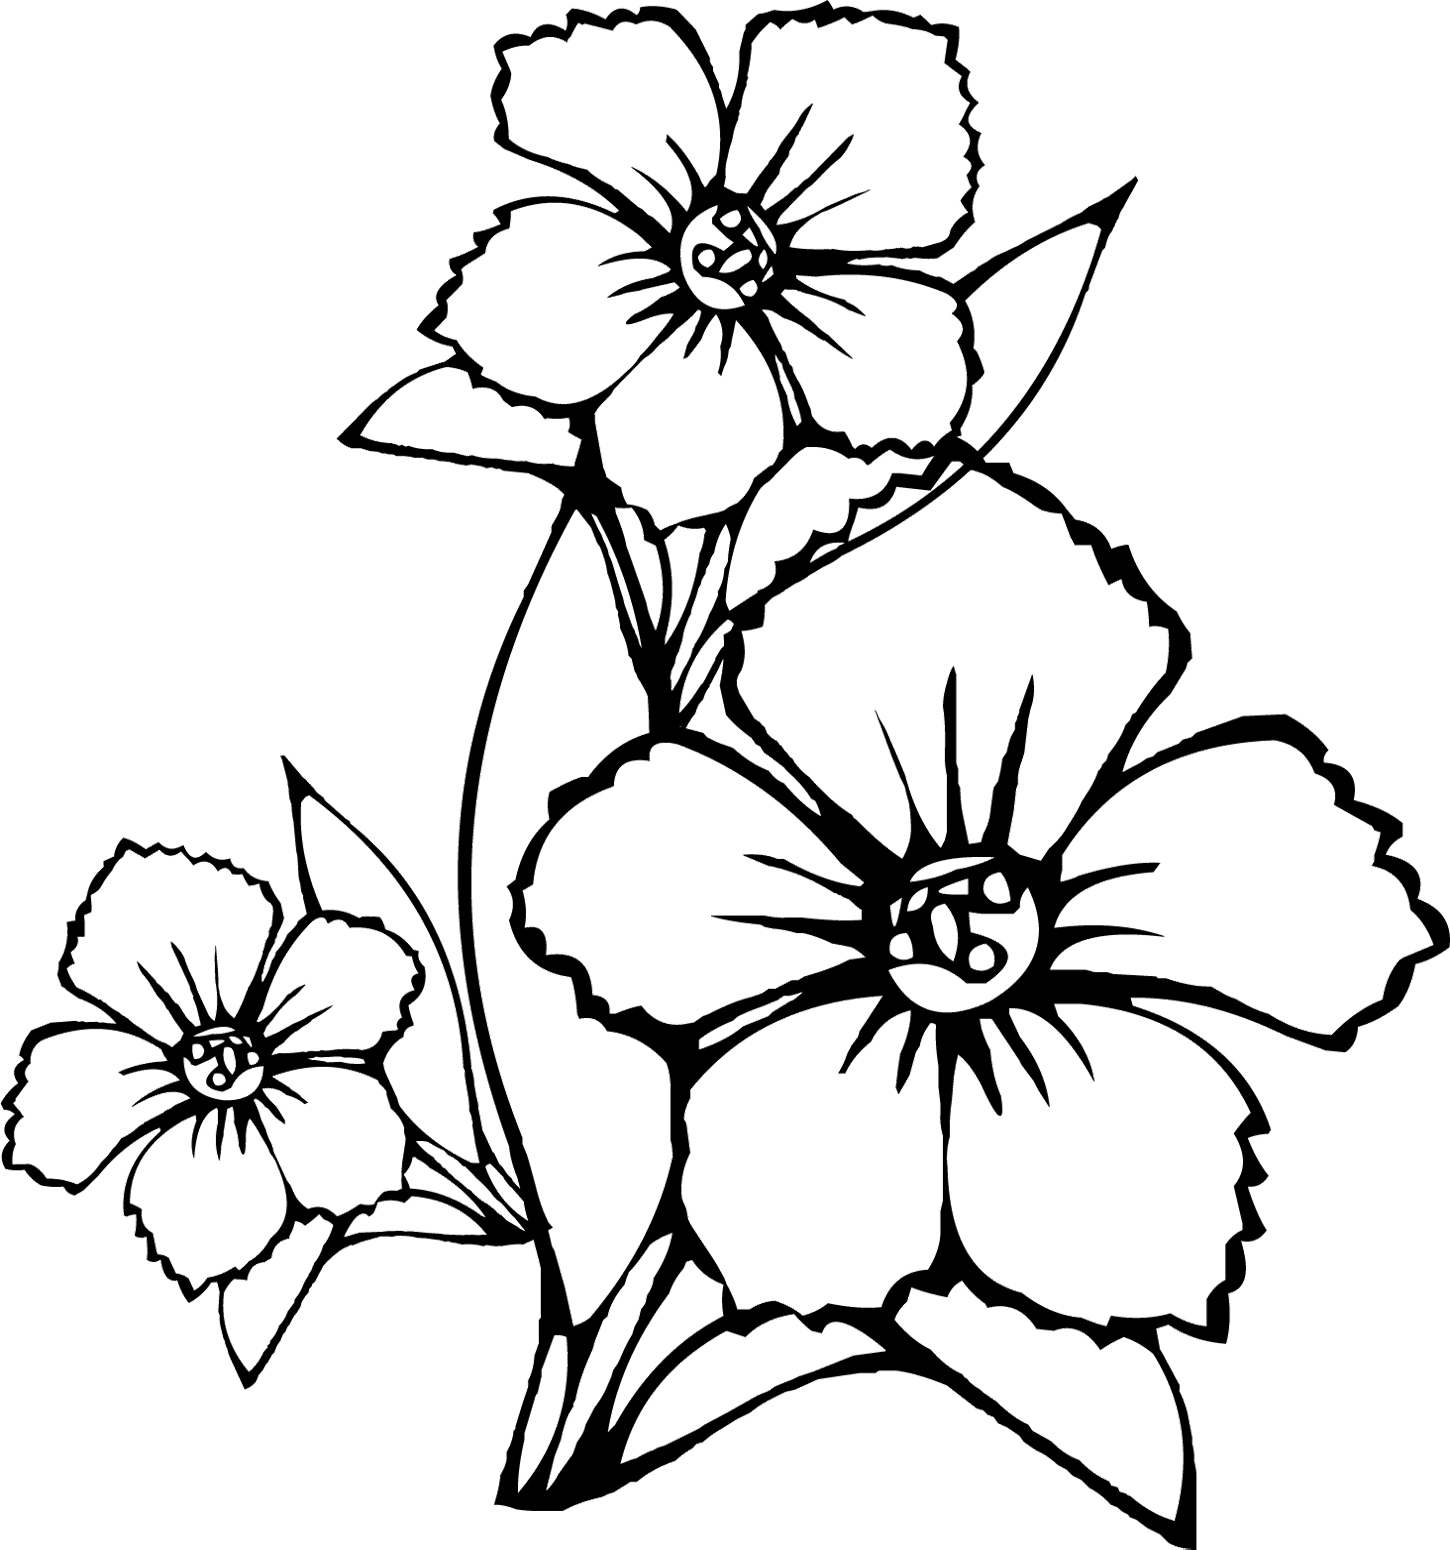 Colour Drawing Pictures Of Flowers at GetDrawings.com